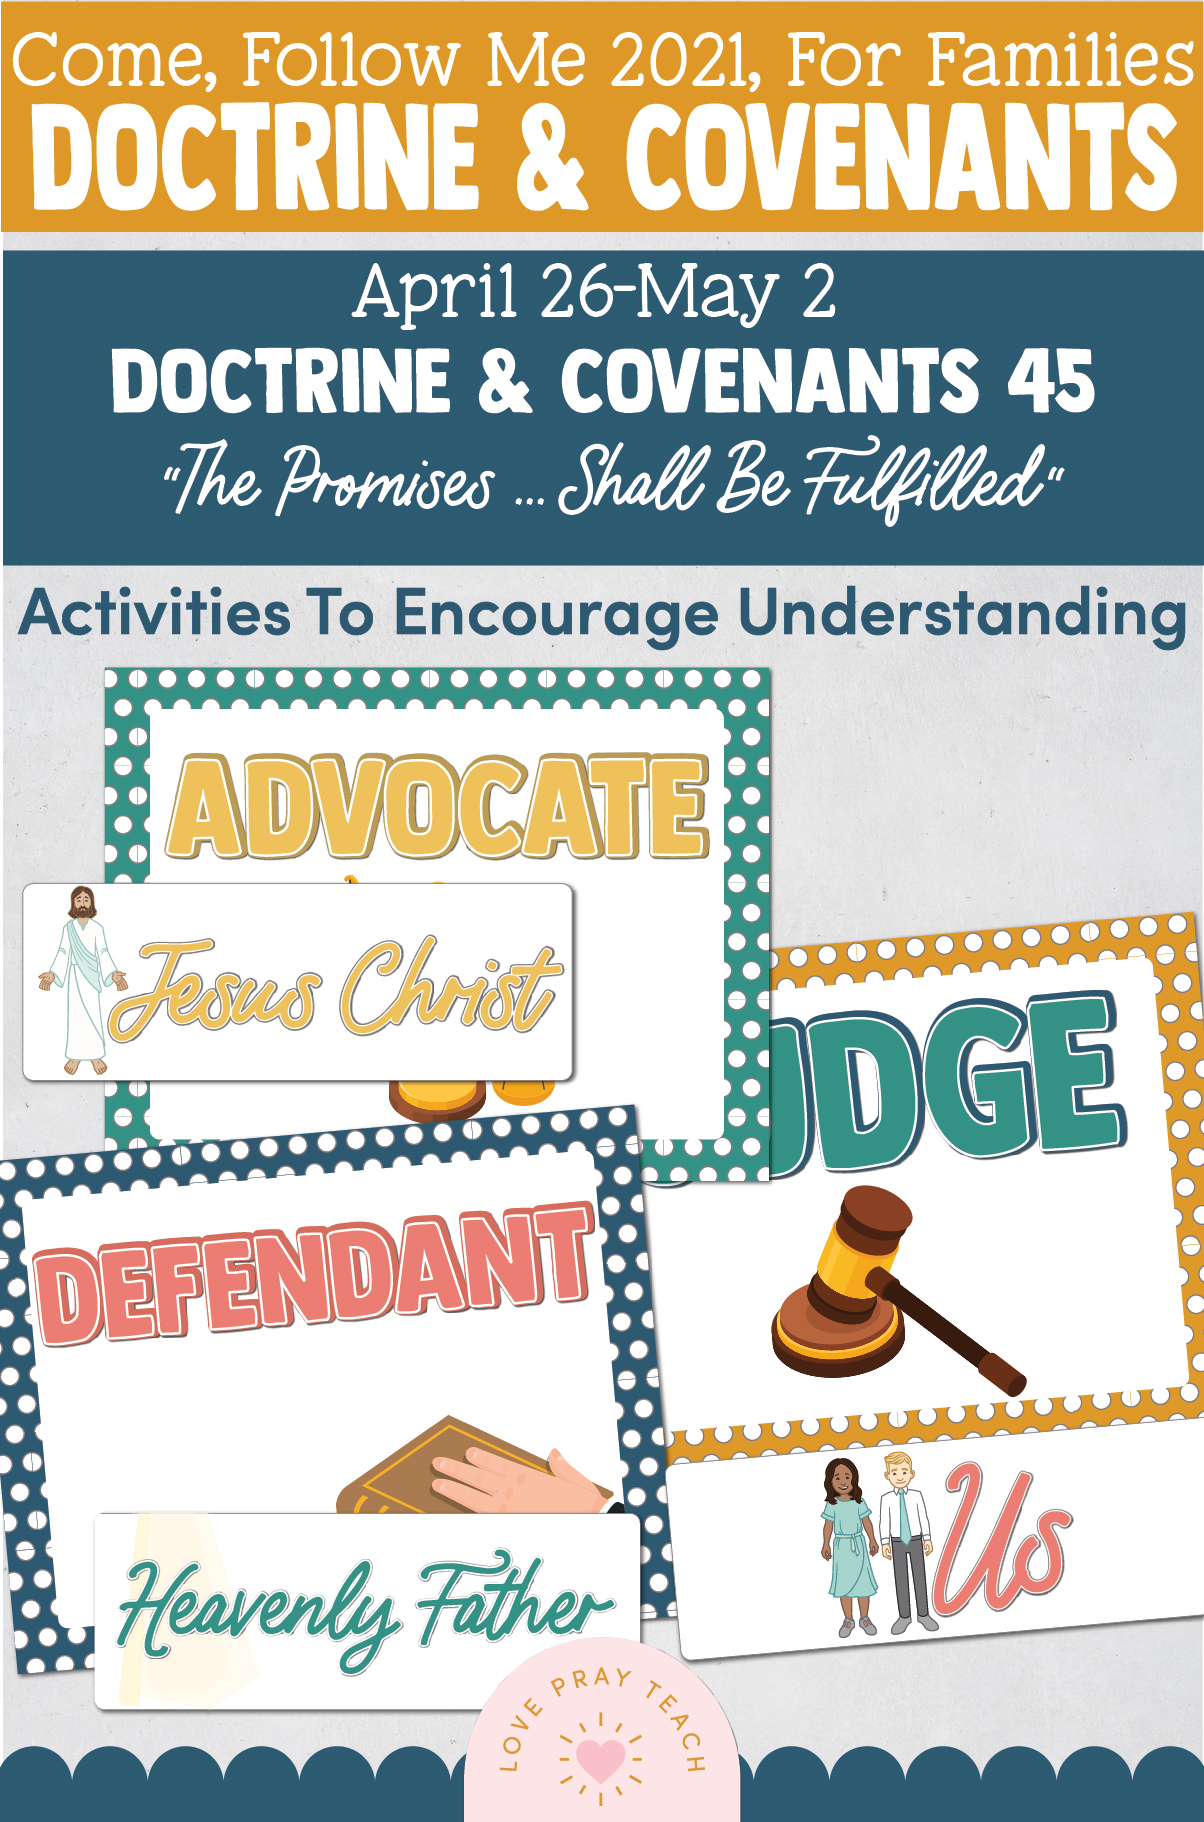 """Come, Follow Me—For Individuals and Families: Doctrine And Covenants 2021, May Week 1 Doctrine and Covenants 45: April 26-May 2,""""The Promises … Shall Be Fulfilled"""""""